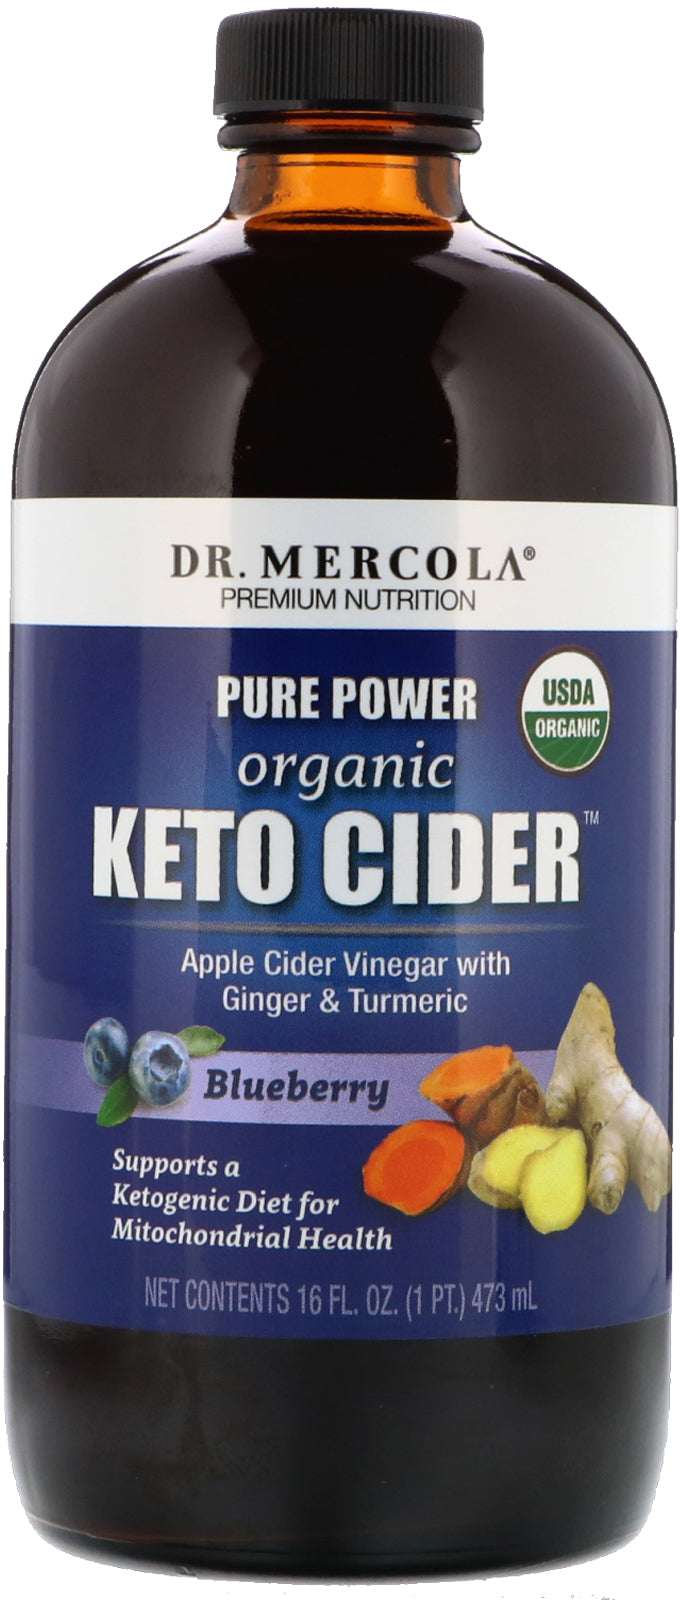 Pure Power Organic Keto Cider™, 16 Fl Oz (473 mL) Liquid